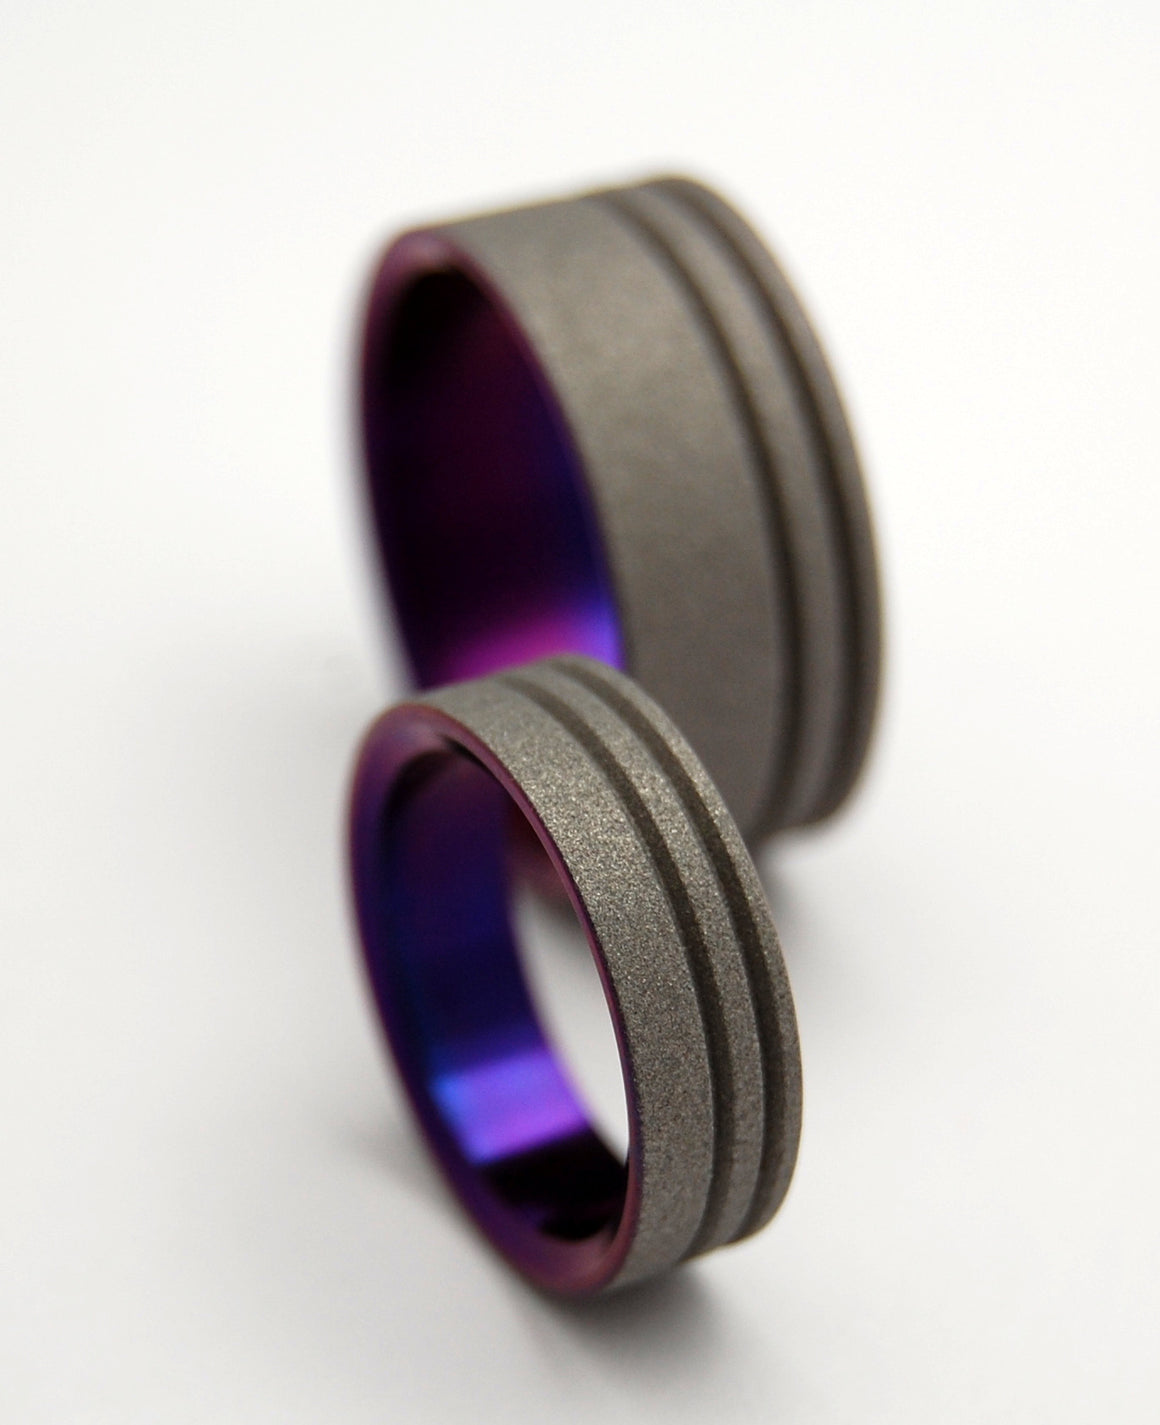 TO THE FUTURE PURPLE | Purple Sandblasted Titanium - Unique Wedding Rings - Wedding Rings Set - Minter and Richter Designs